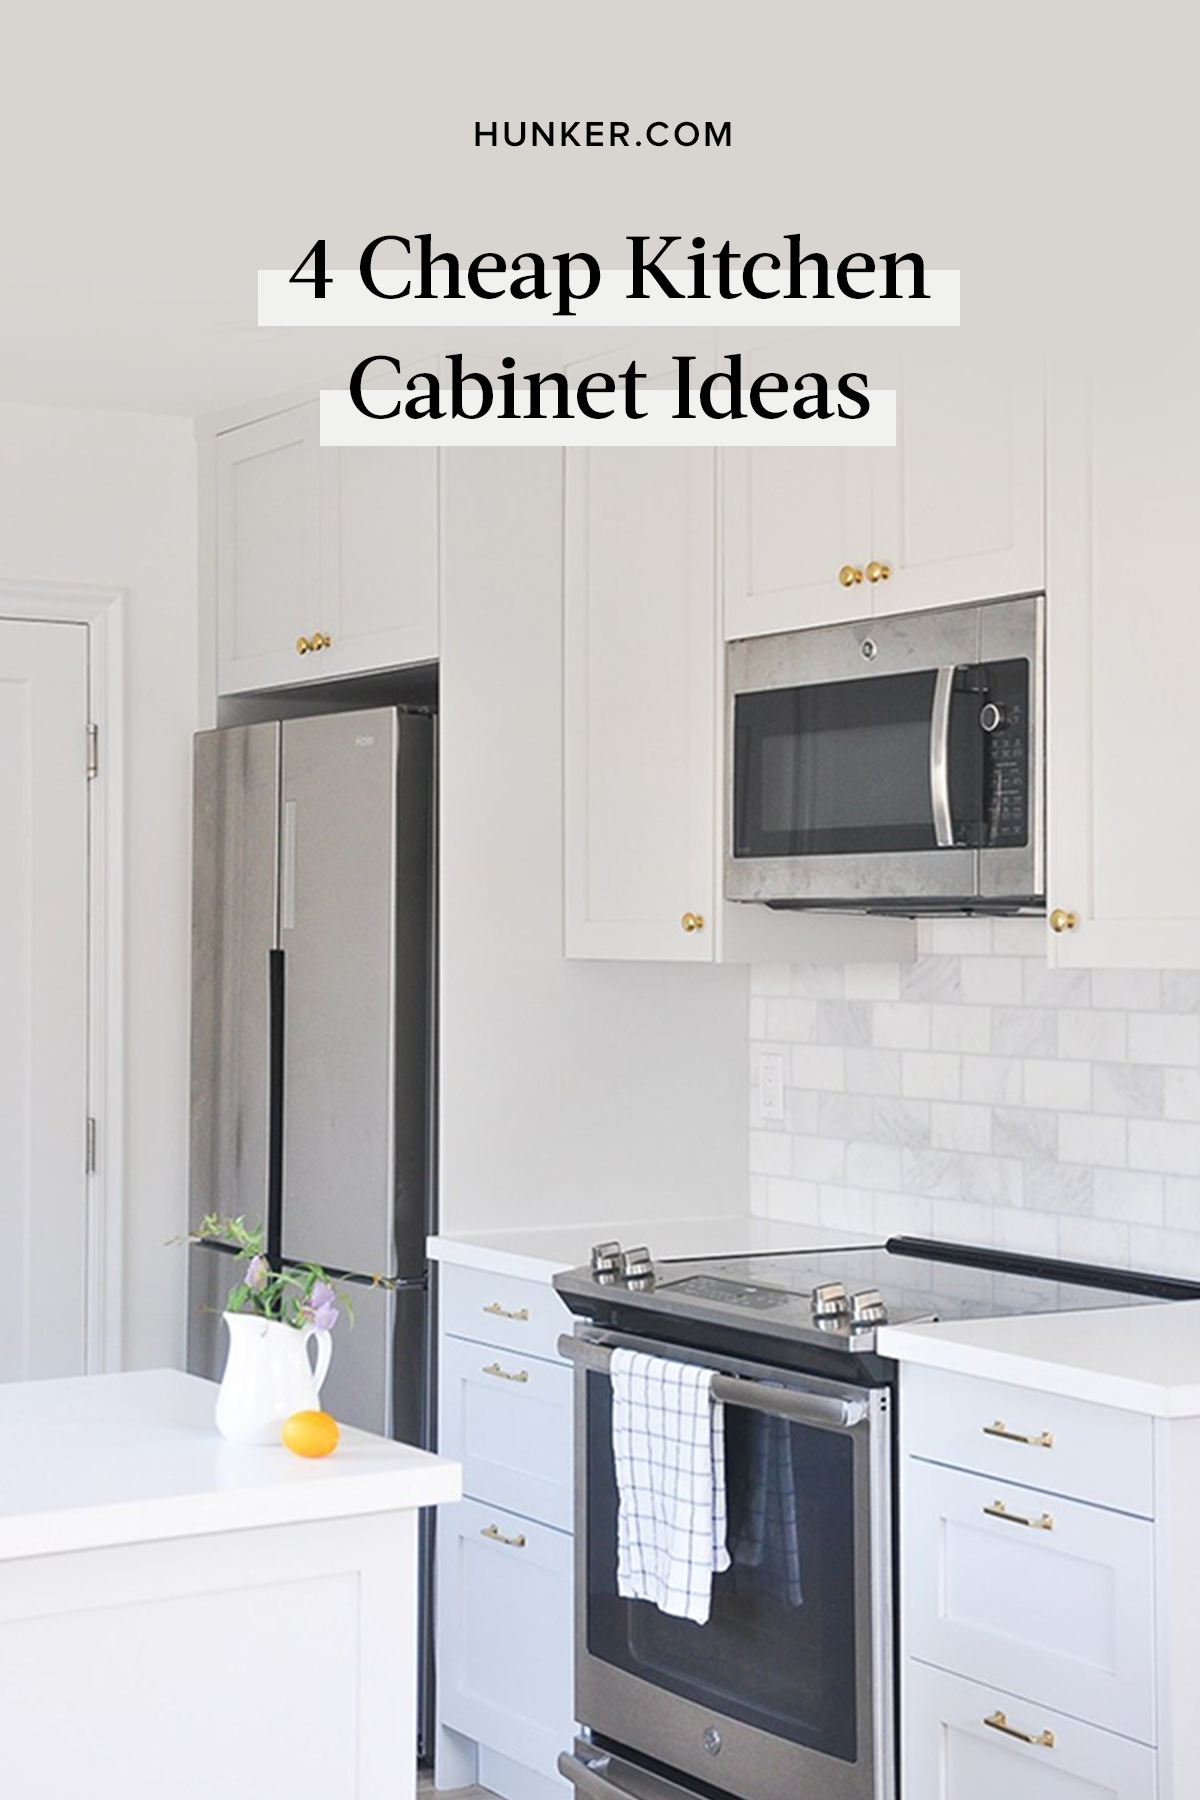 Remodeling Blues Here Are 4 Cheap Kitchen Cabinet Ideas Hunker Kitchen Cabinets Cheap Kitchen Cabinets Cheap Kitchen